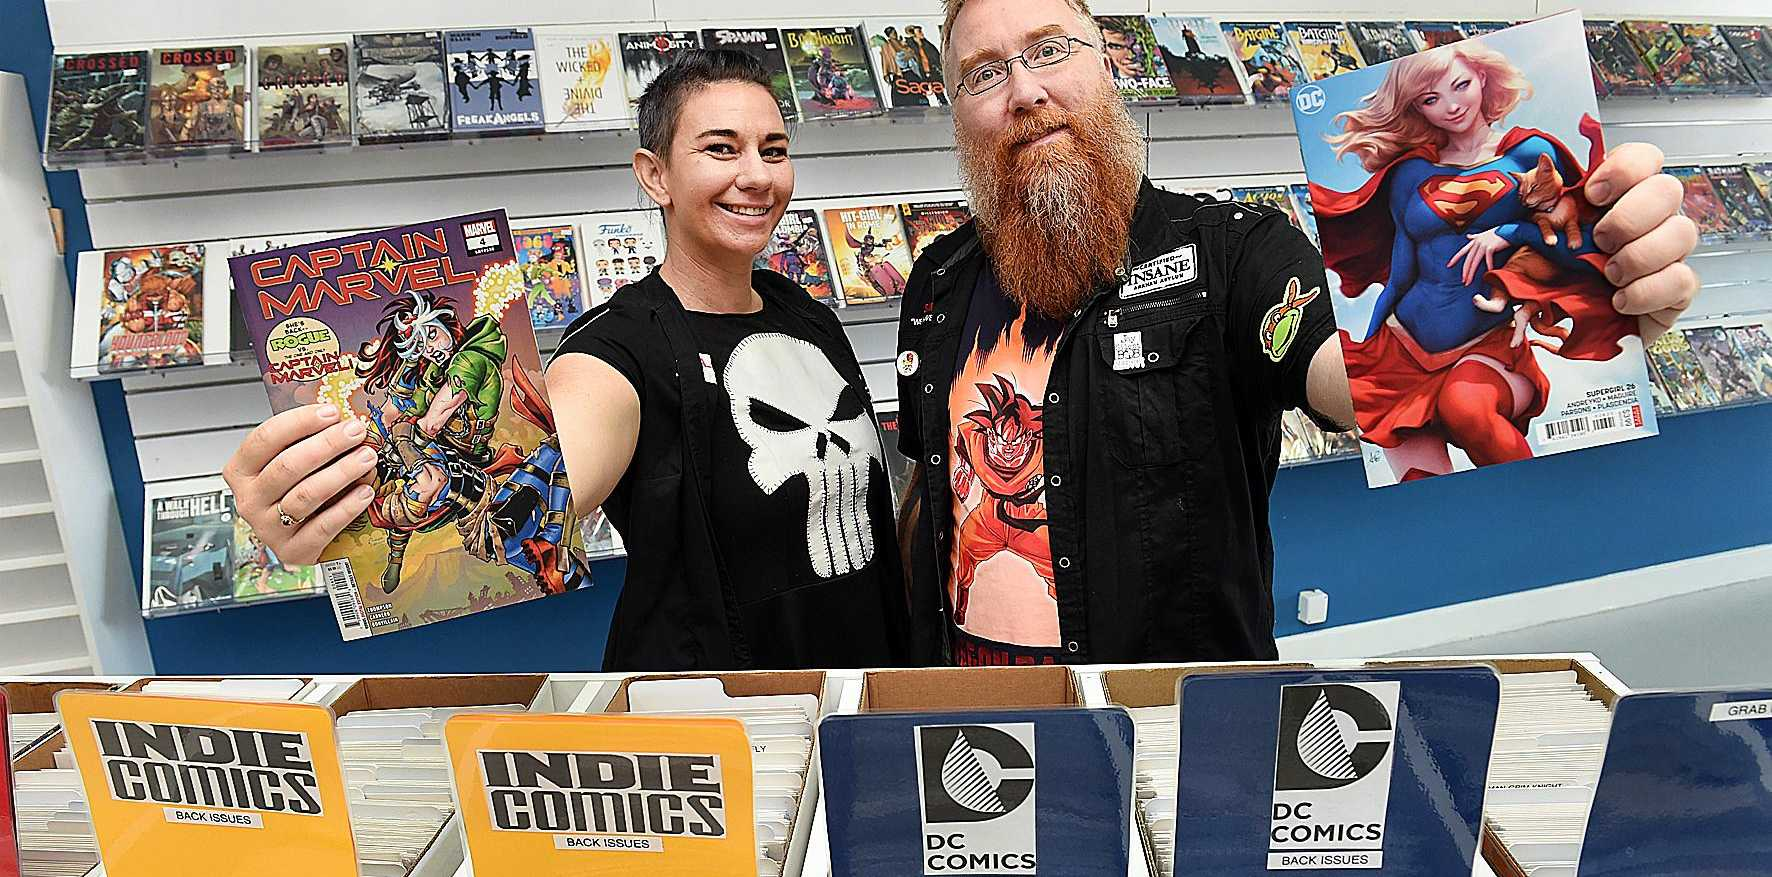 FREE COMIC BOOK DAY: On May the fourth, armed with free comics, an international comic artist and 12 national Cos players Comics n Pop owners Carla and Simon Thorton will raise funds for local drug and alcohol rehabilitation centre Bayside Transformations.